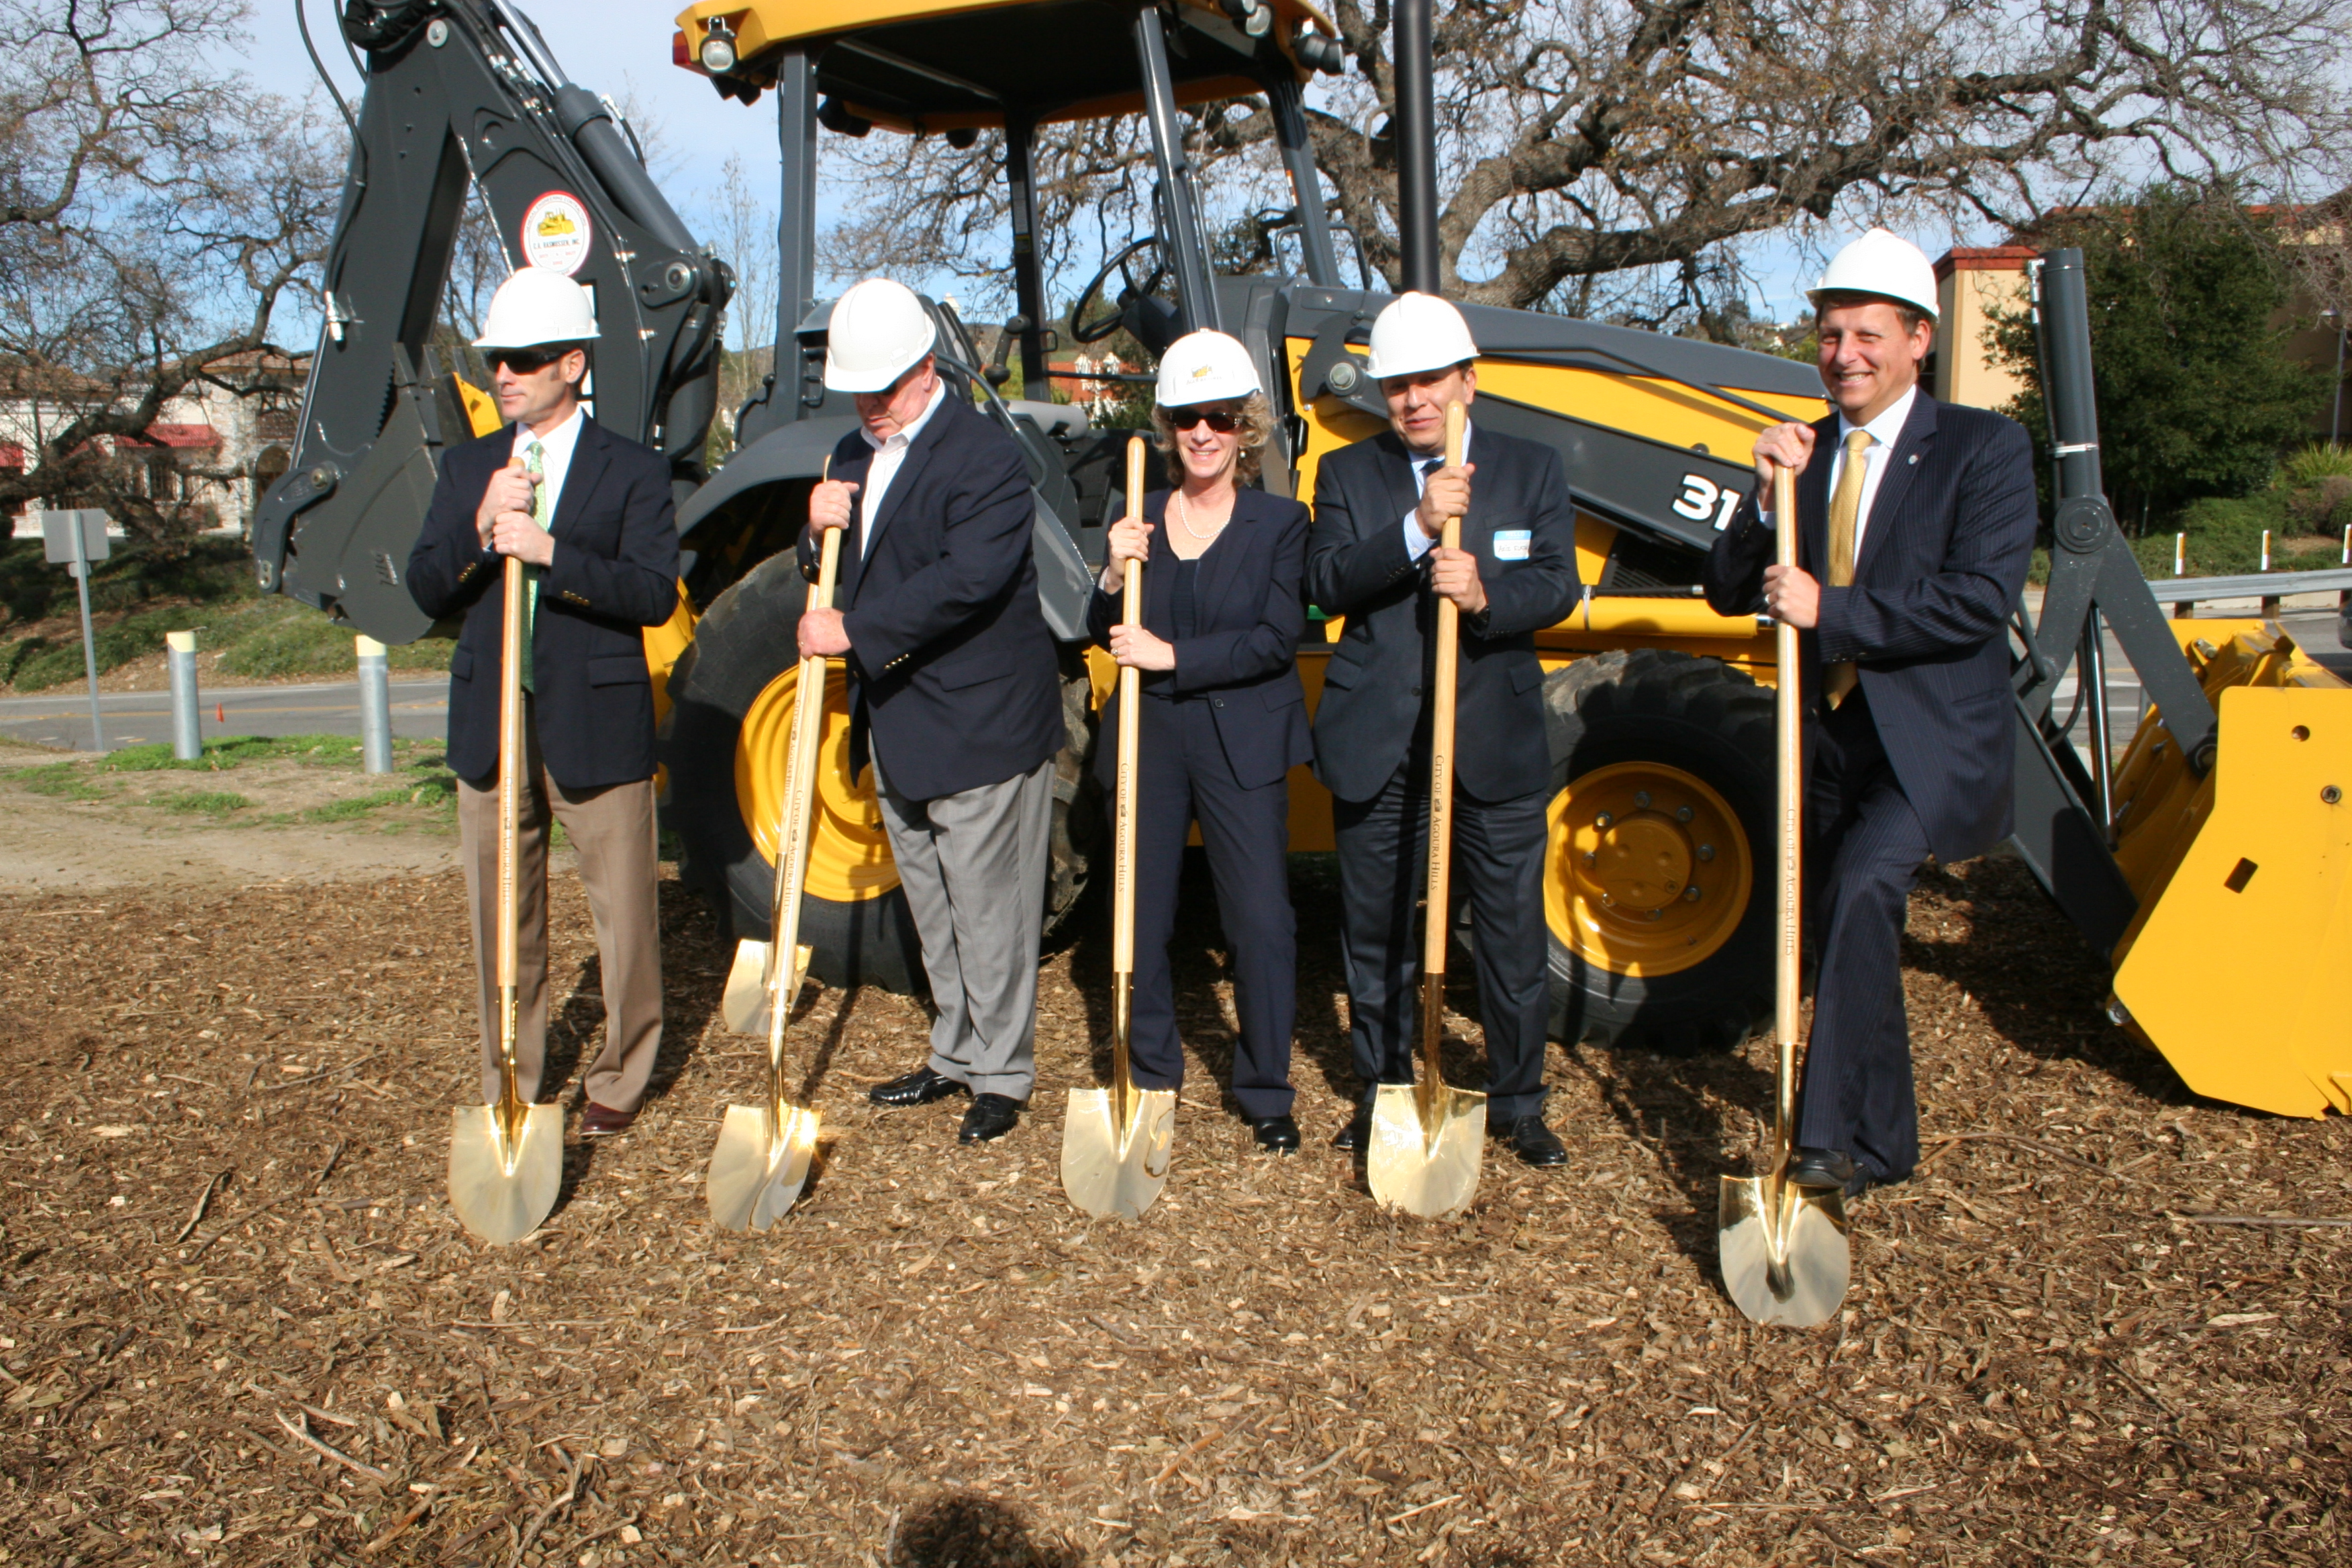 Metro Board Member Ara Najarian joins other officials for the Agoura Road Widening Project groundbreaking. Photo: Paul Gonzales/Metro